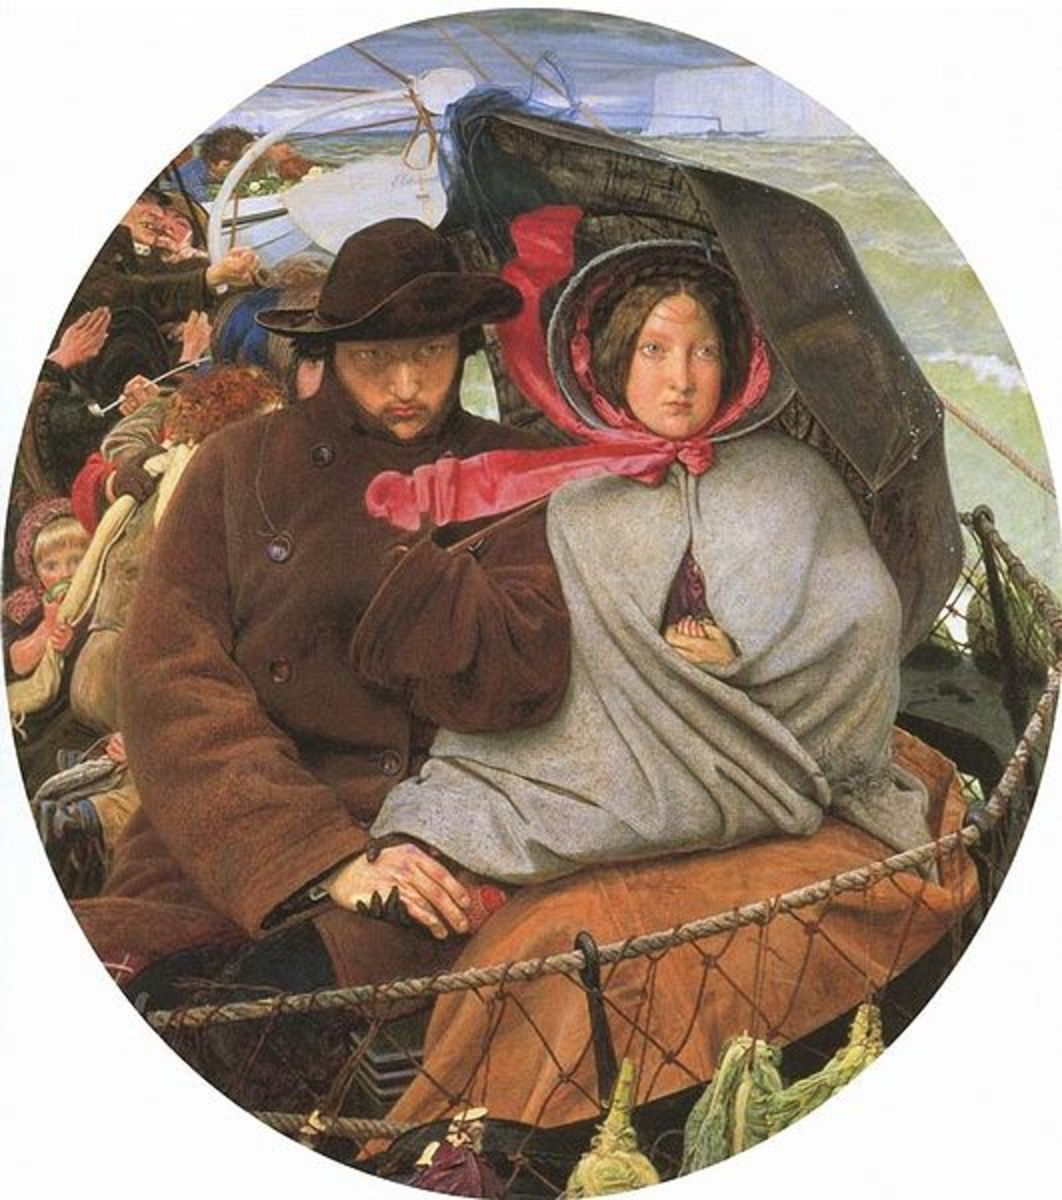 'The Last of England' by Ford Madox Brown 1855, Pre-Raphaelite Painting